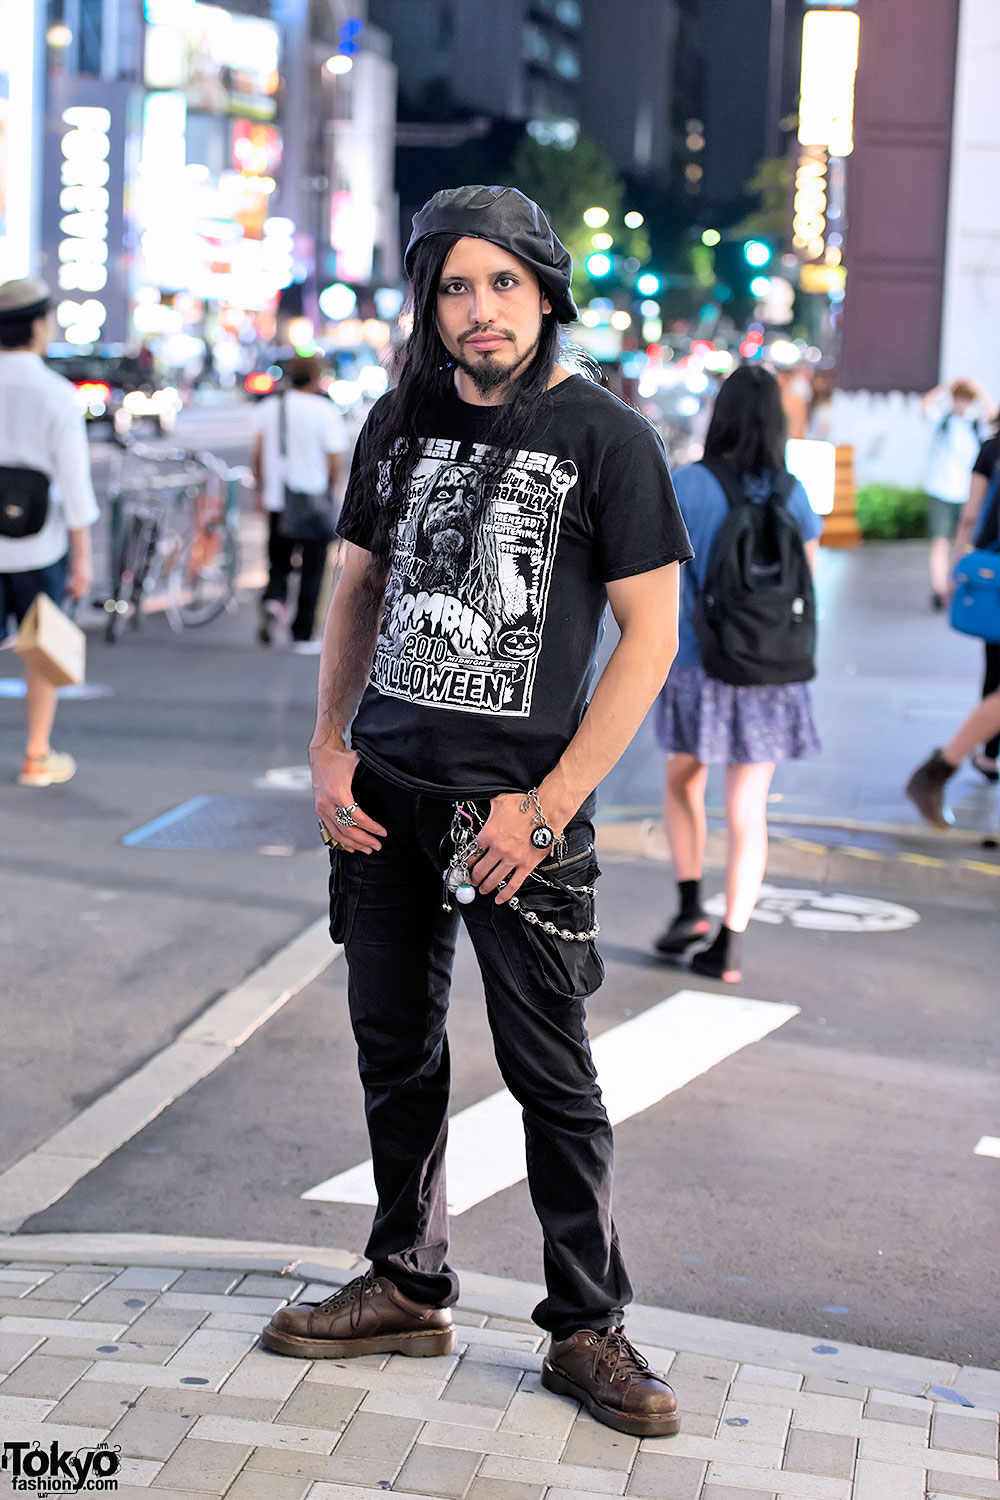 Long Haired Japanese Guy x Rob Zombie T-shirt